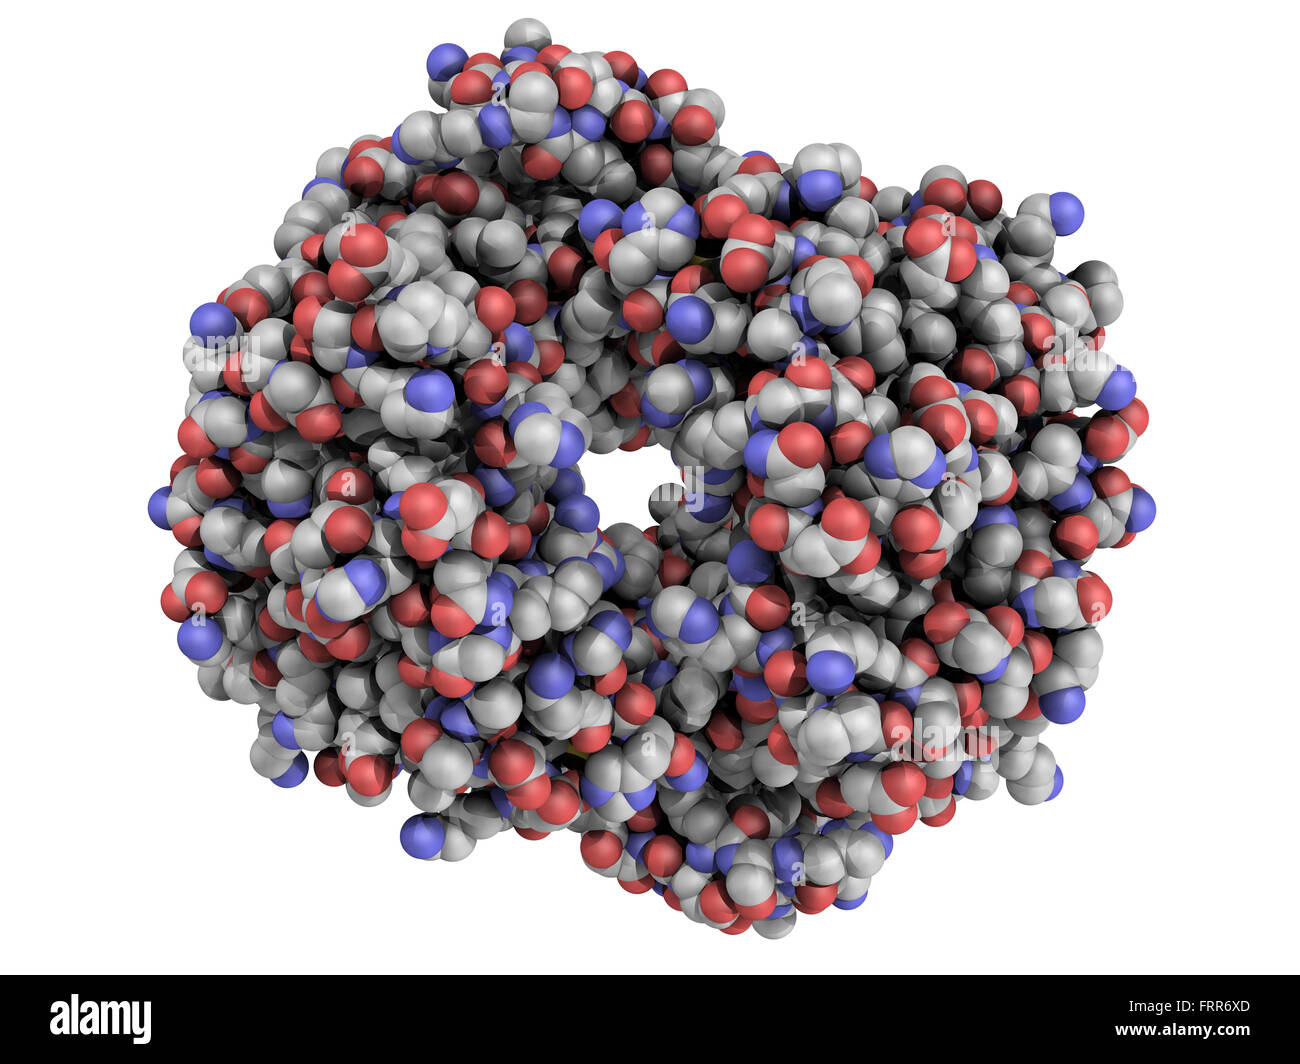 Chemical structure of human hemoglobin (Hb) protein molecule. Iron-containing oxygen transport protein found in - Stock Image